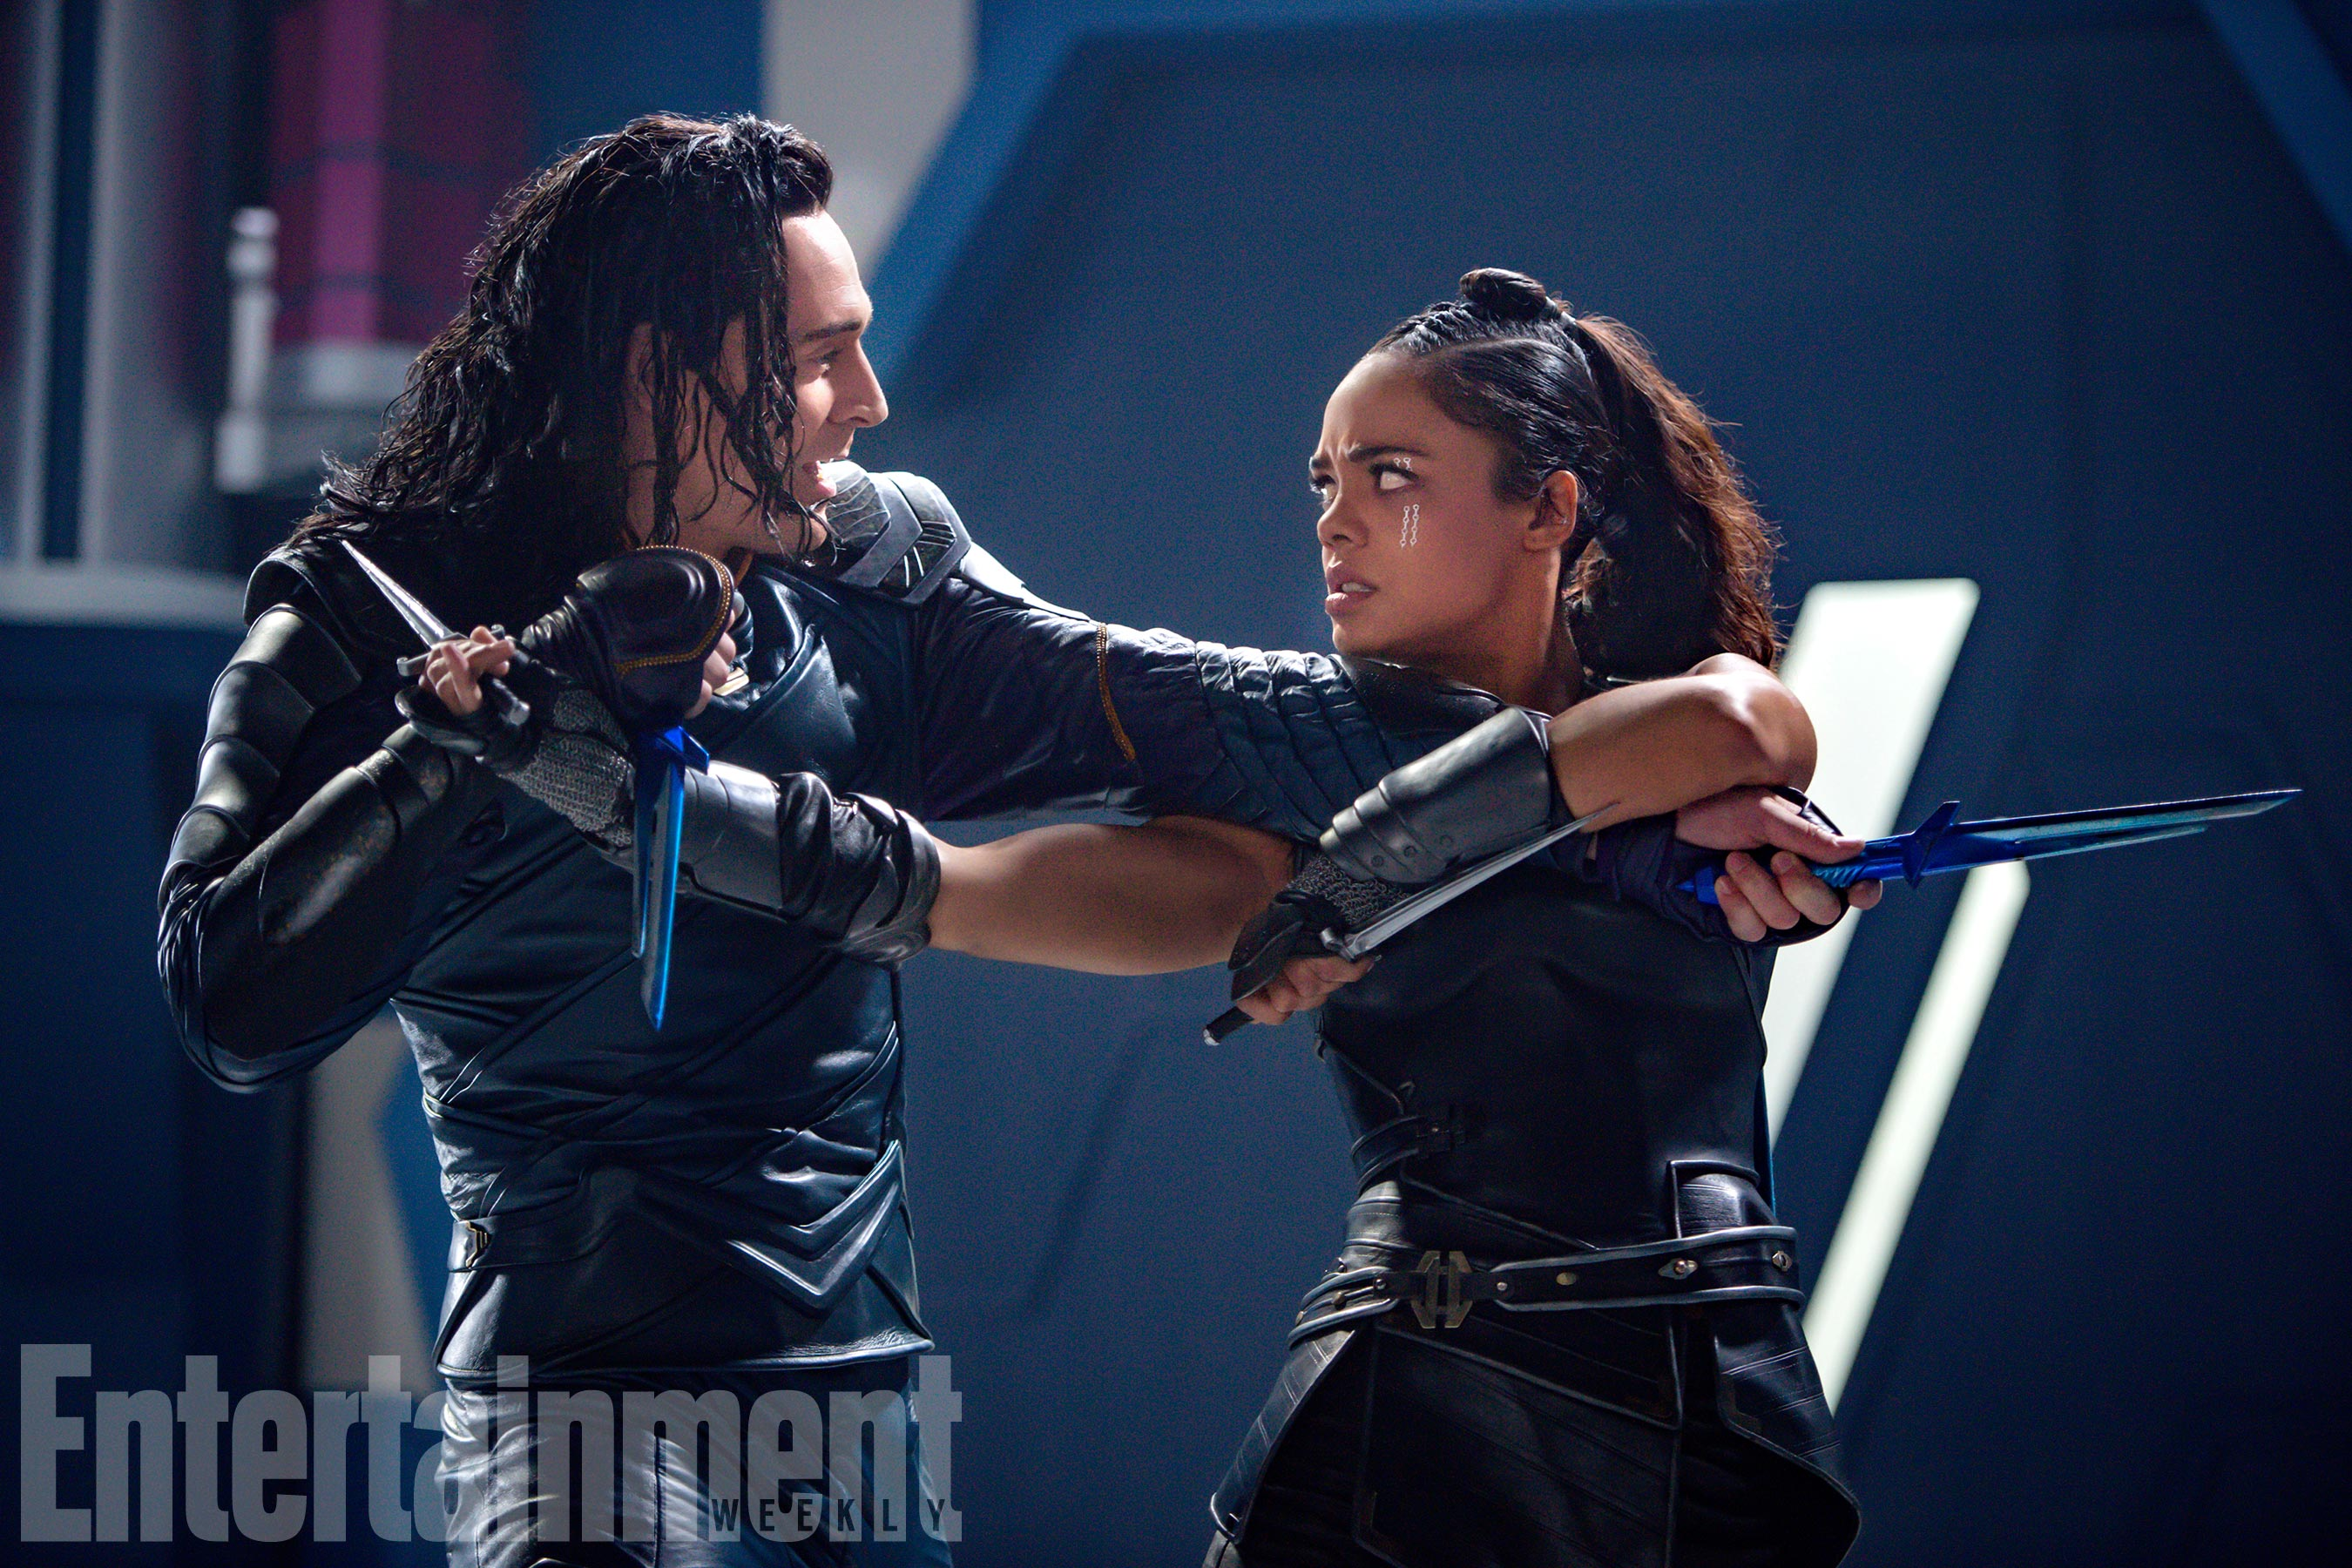 New Thor: Ragnarok images featuring Thor, Loki and Bruce Banner